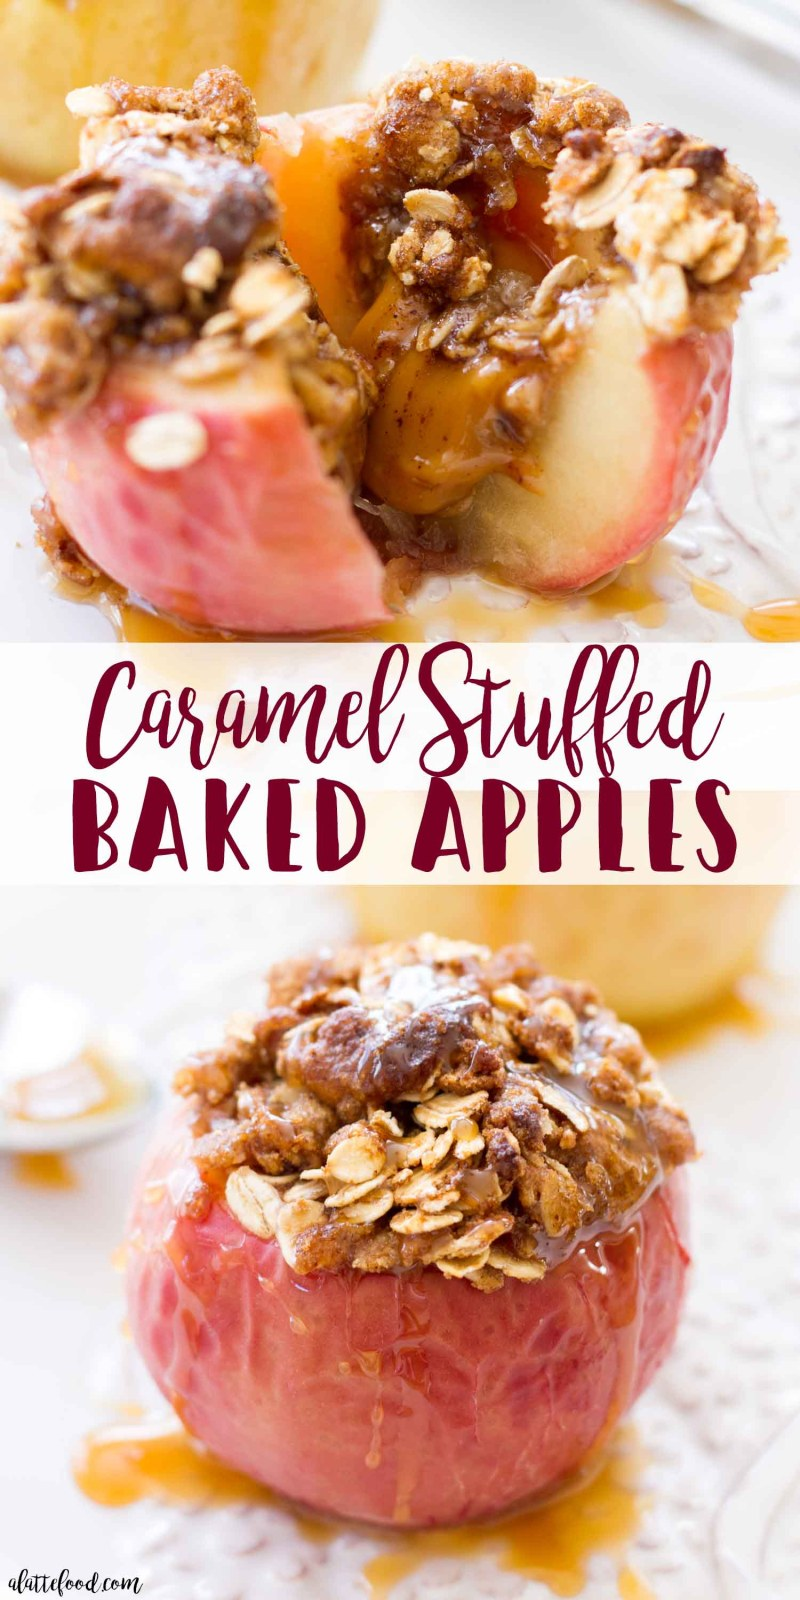 These Brown Sugar Caramel Stuffed Baked Apples make the best fall breakfast!